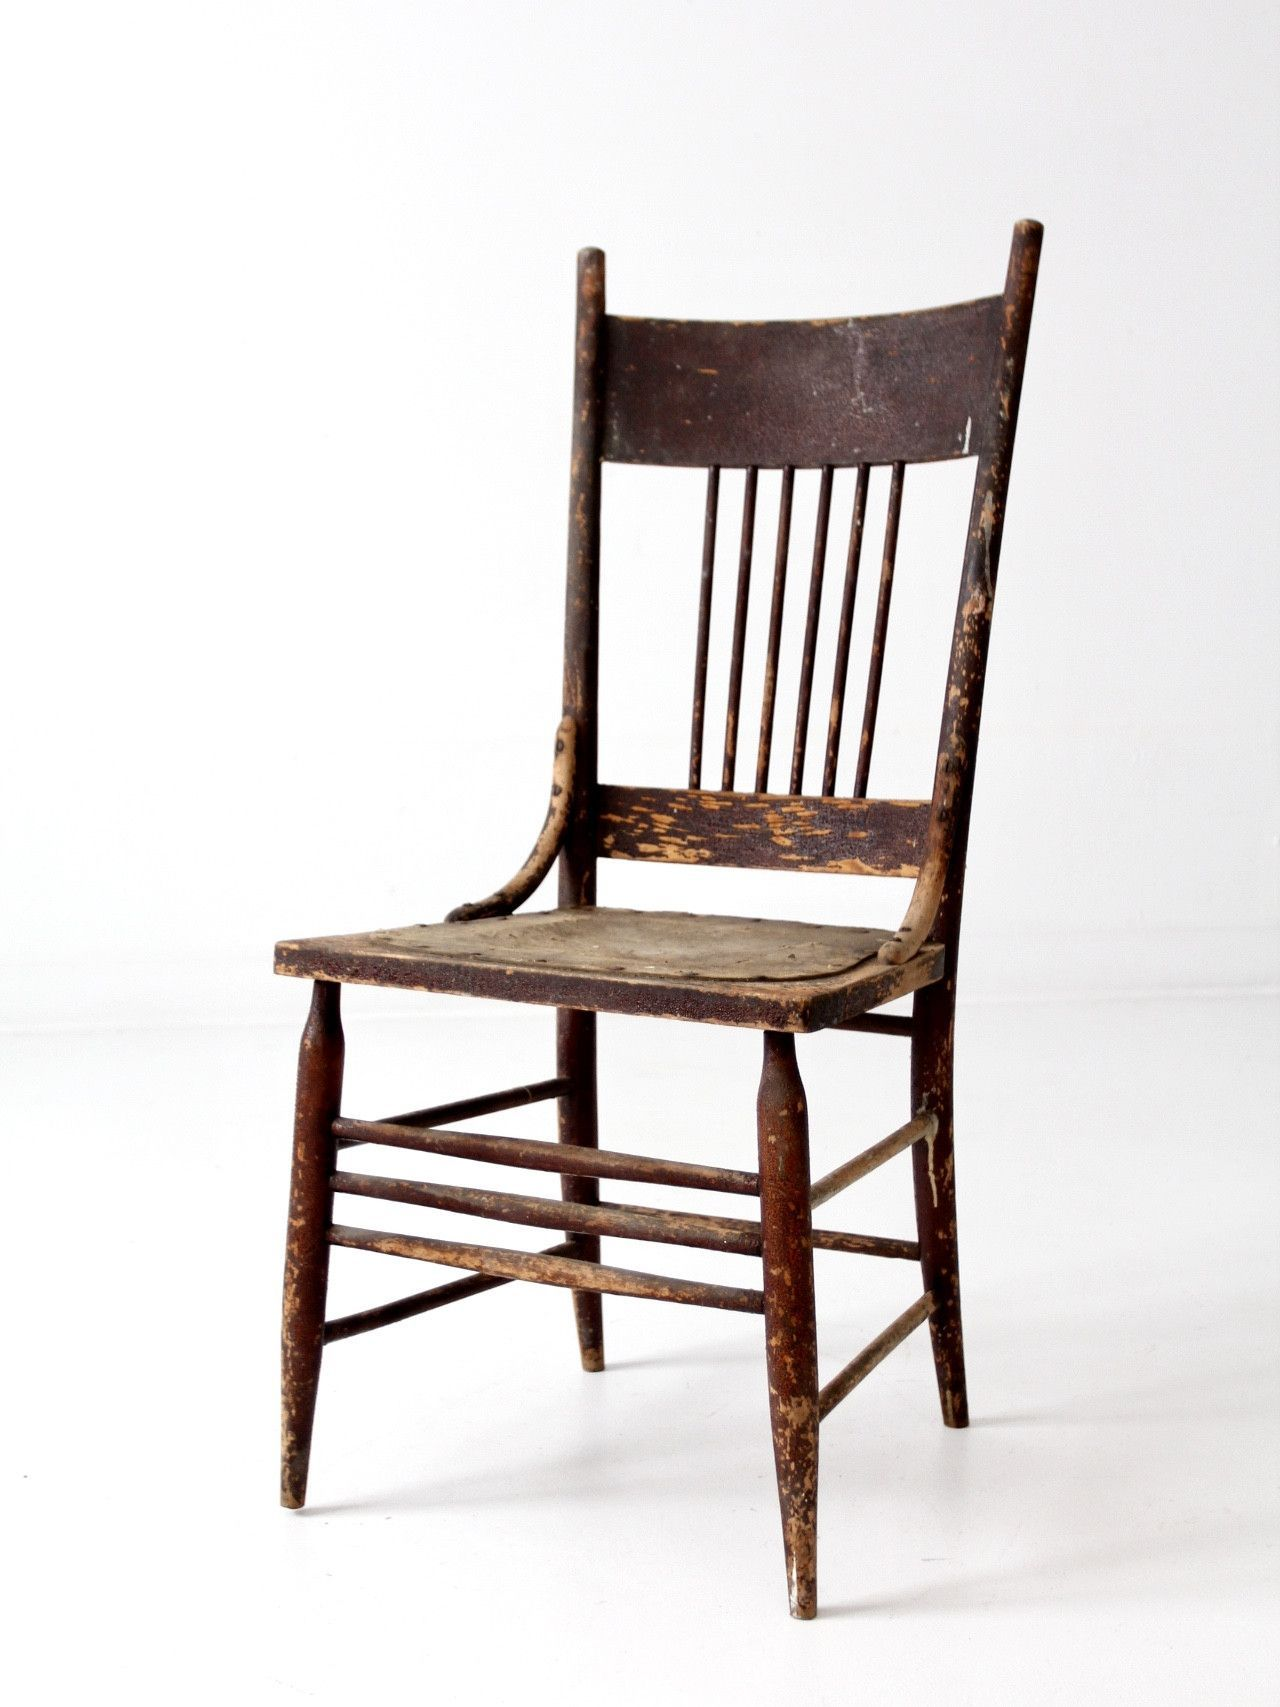 antique spindle back chair with pressed leather seat - Antique Spindle Back Chair With Pressed Leather Seat Chairs